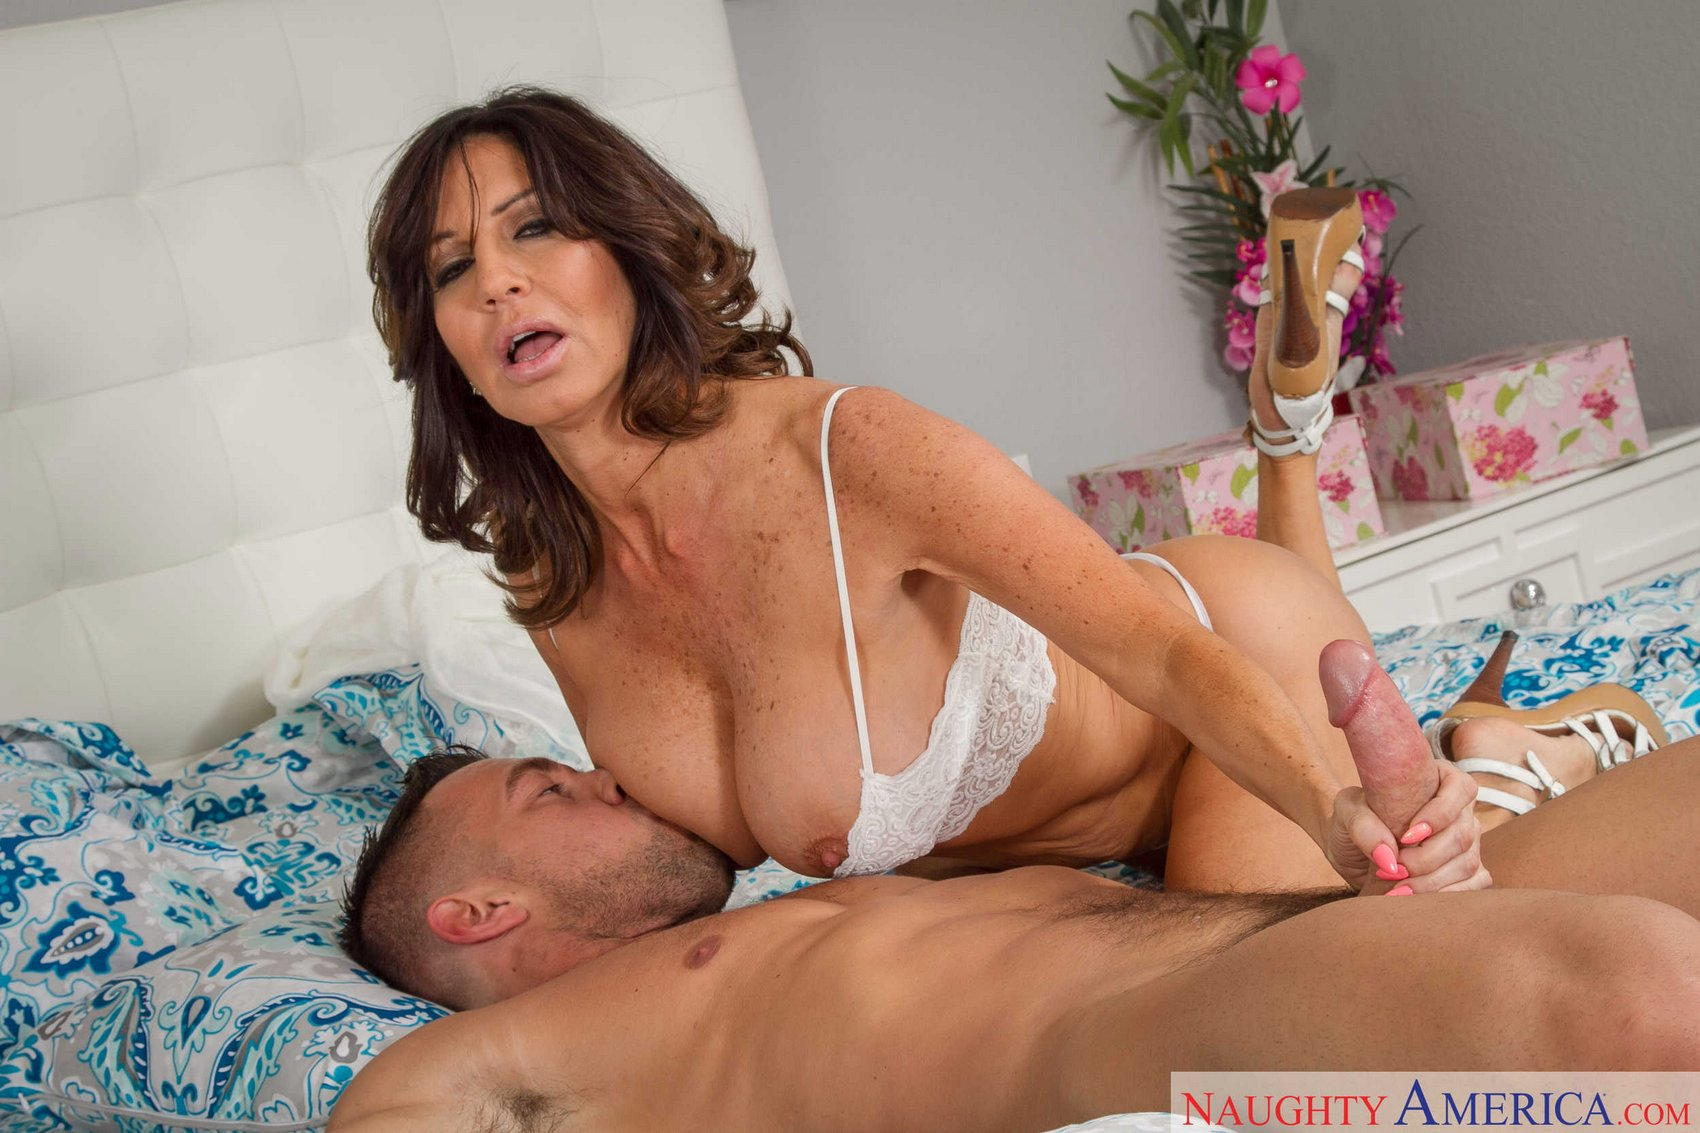 Mature Brunette Tara Holiday Having Hot Sex With Muscular -2895